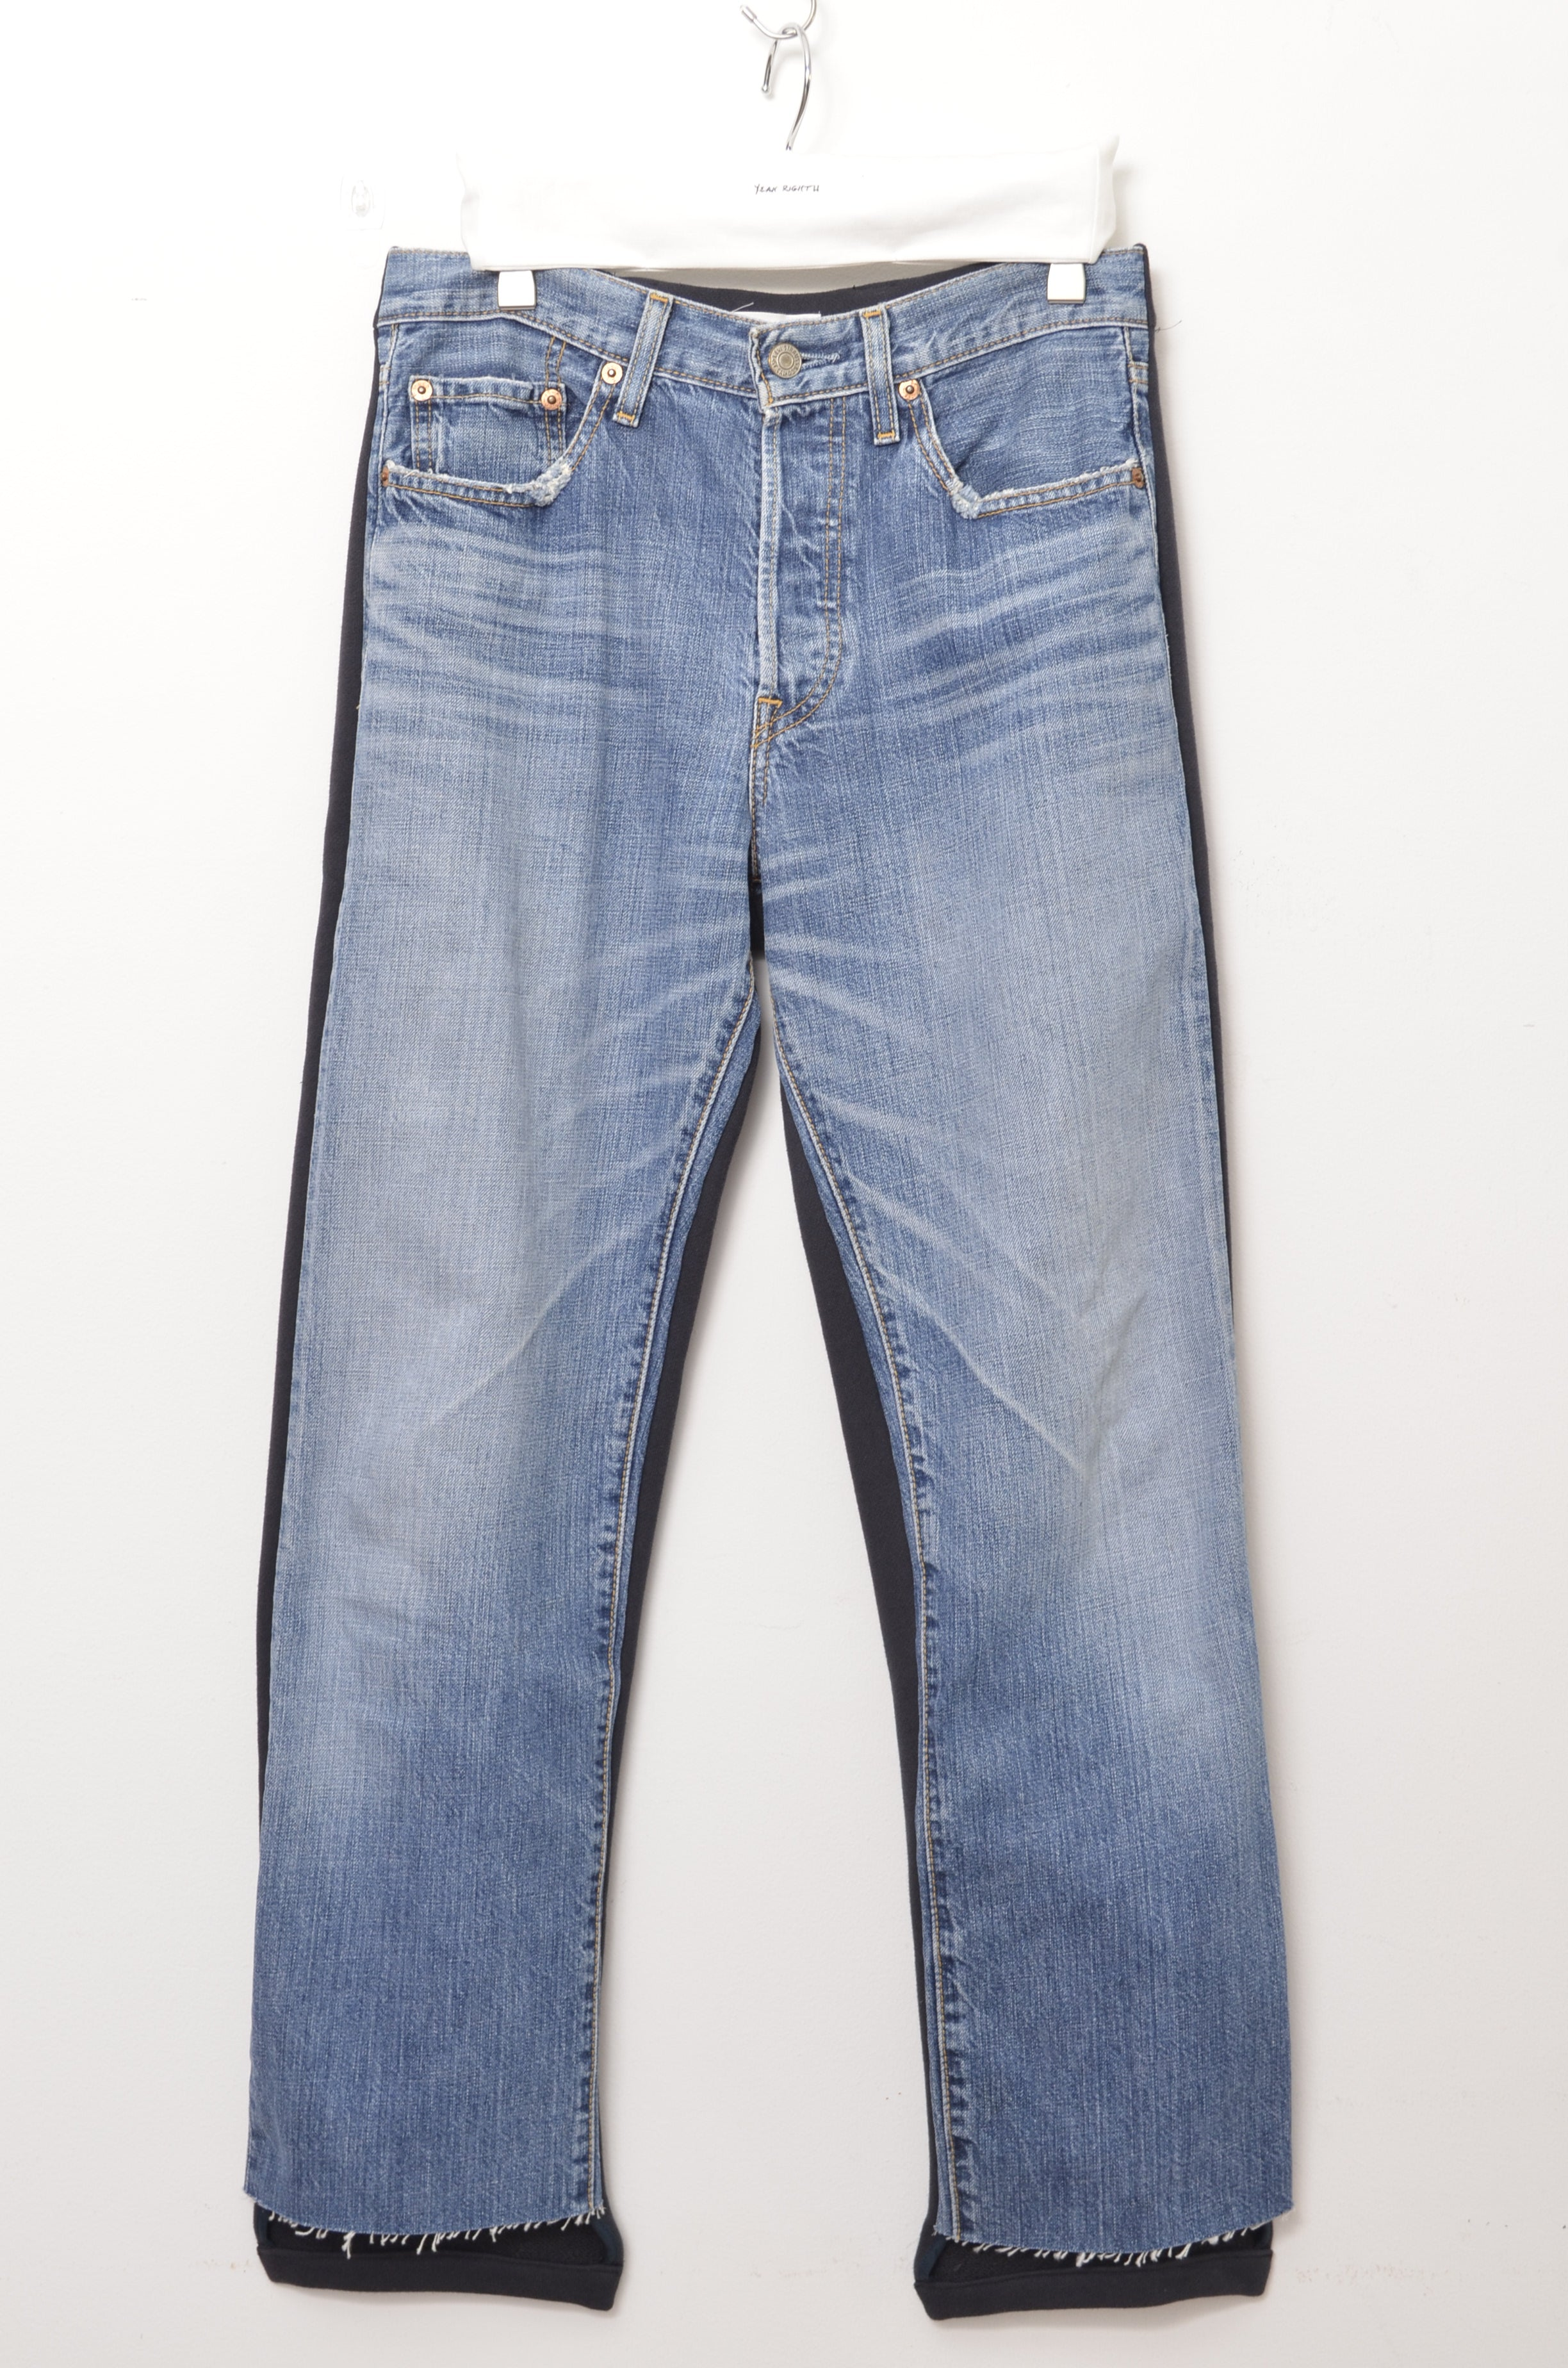 UNION DENIM PT / CHC_002